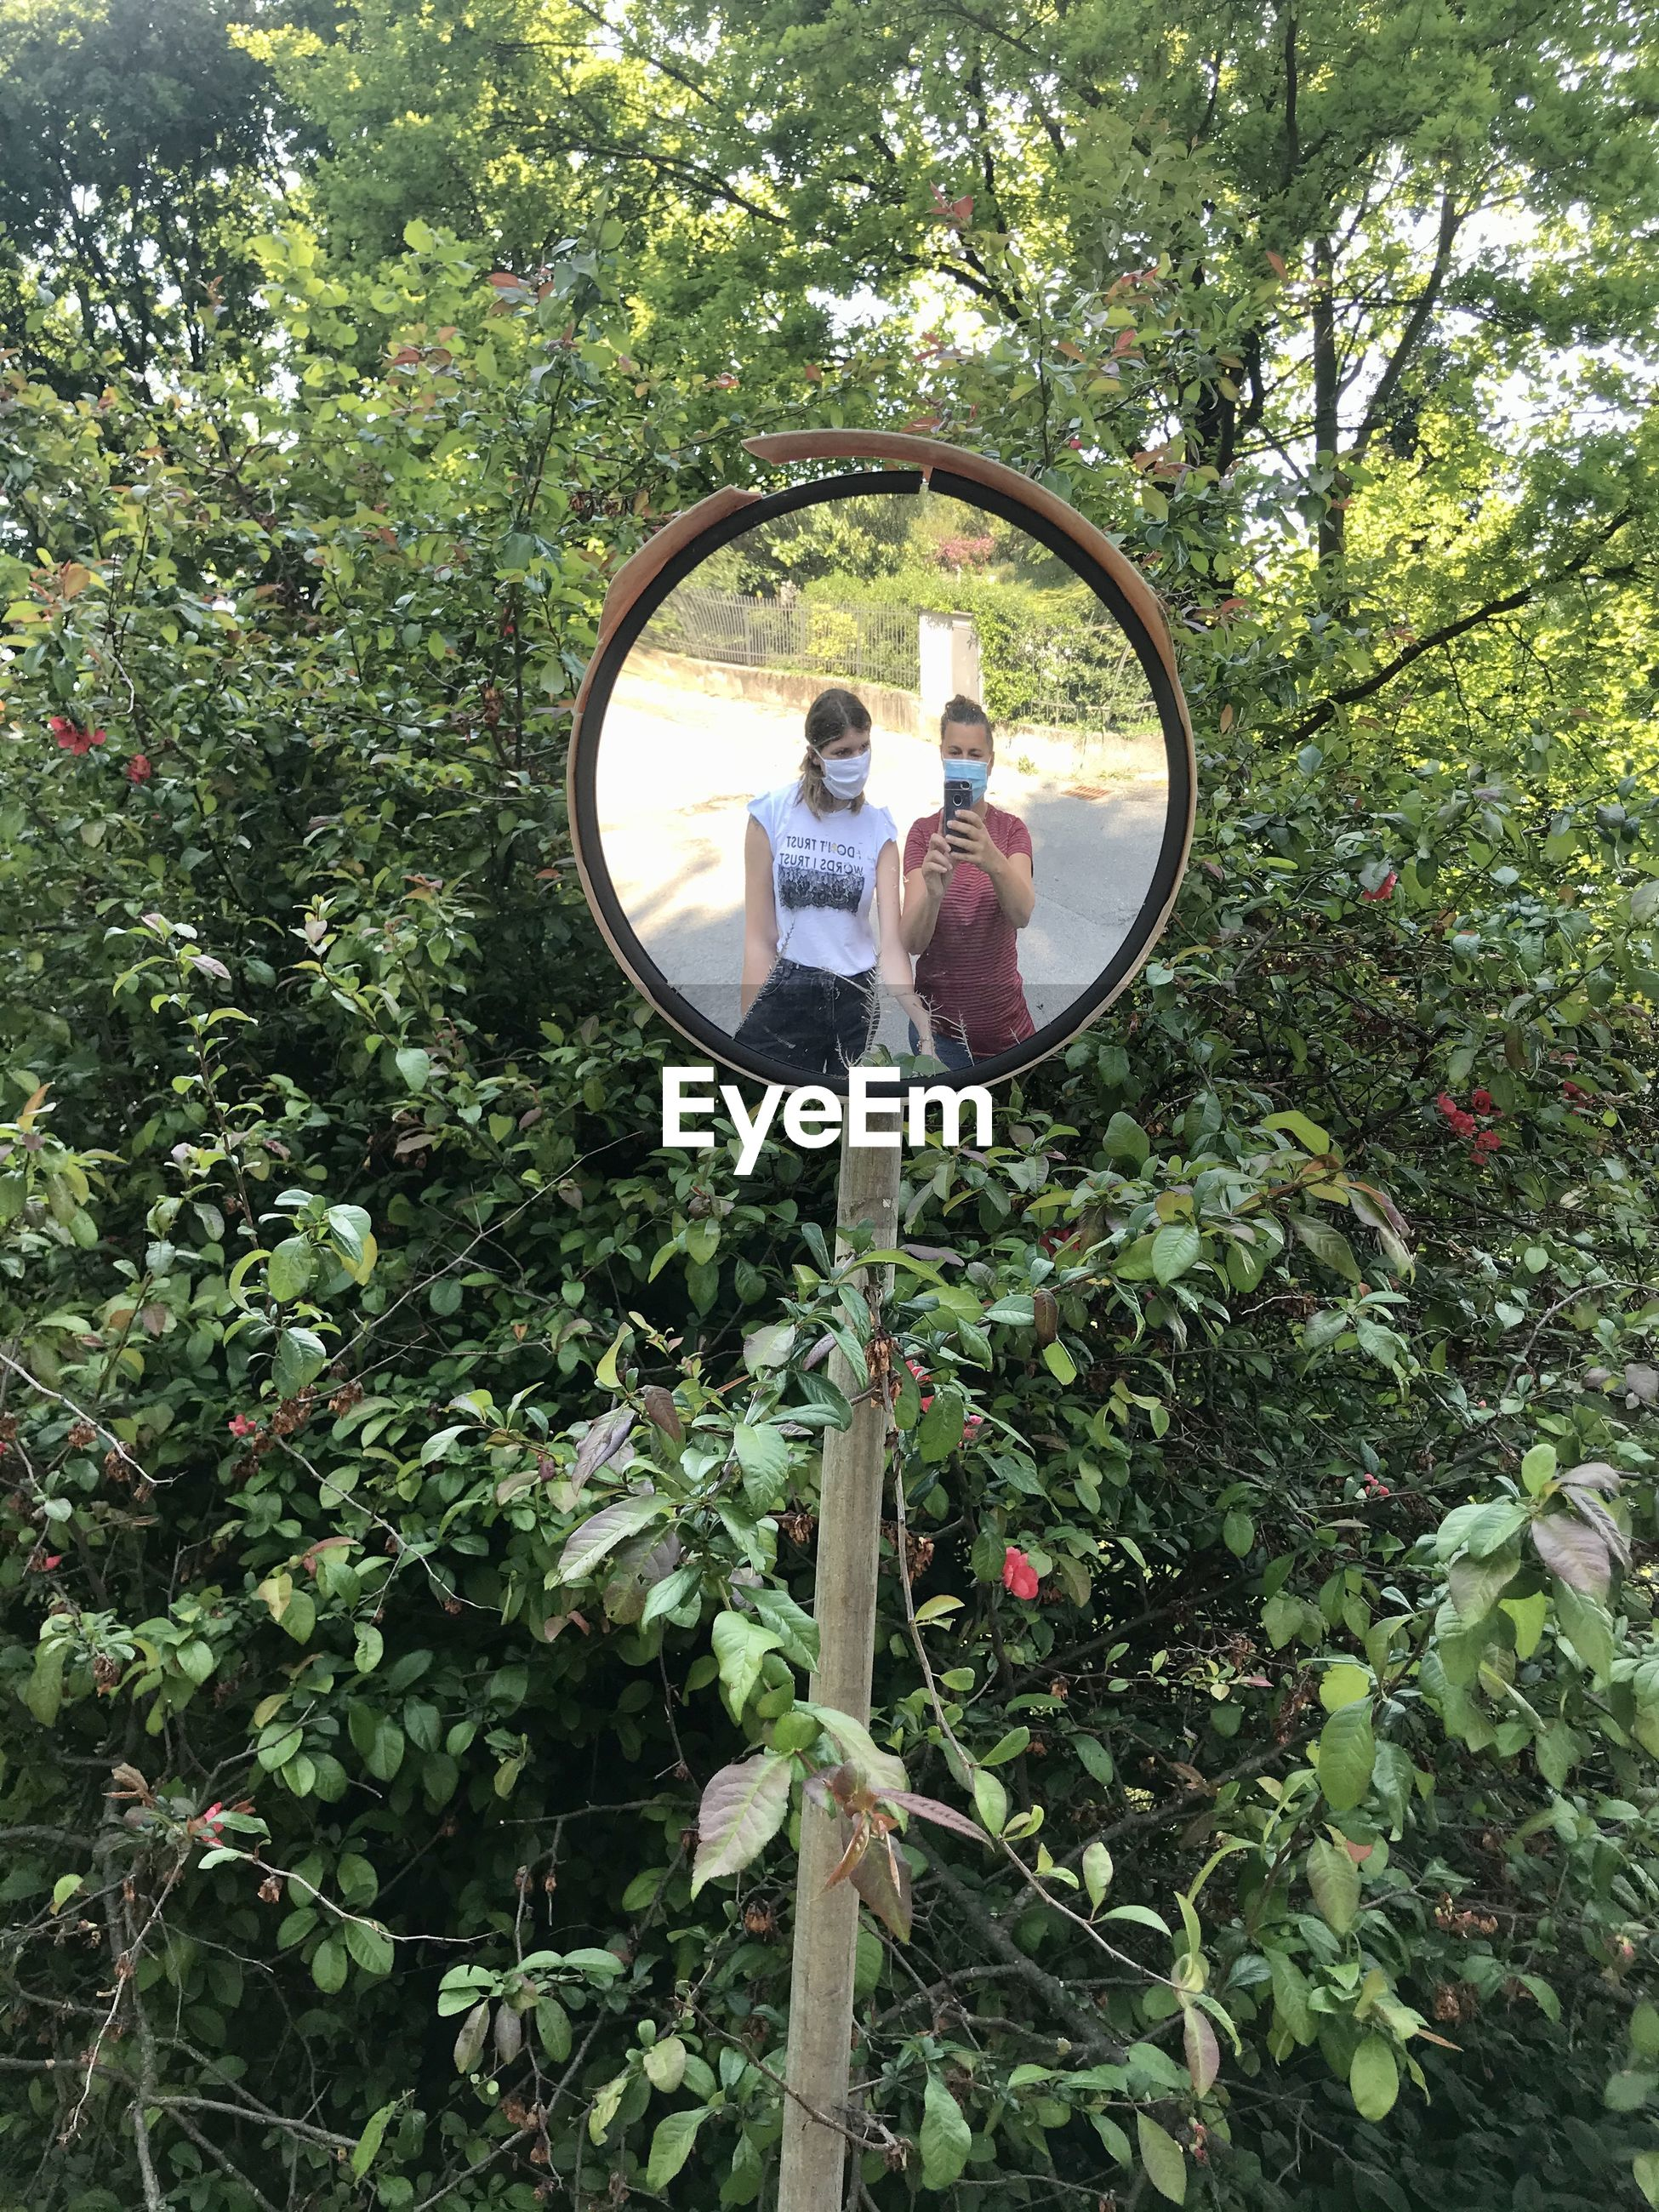 Friends taking selfie reflecting on road mirror in forest